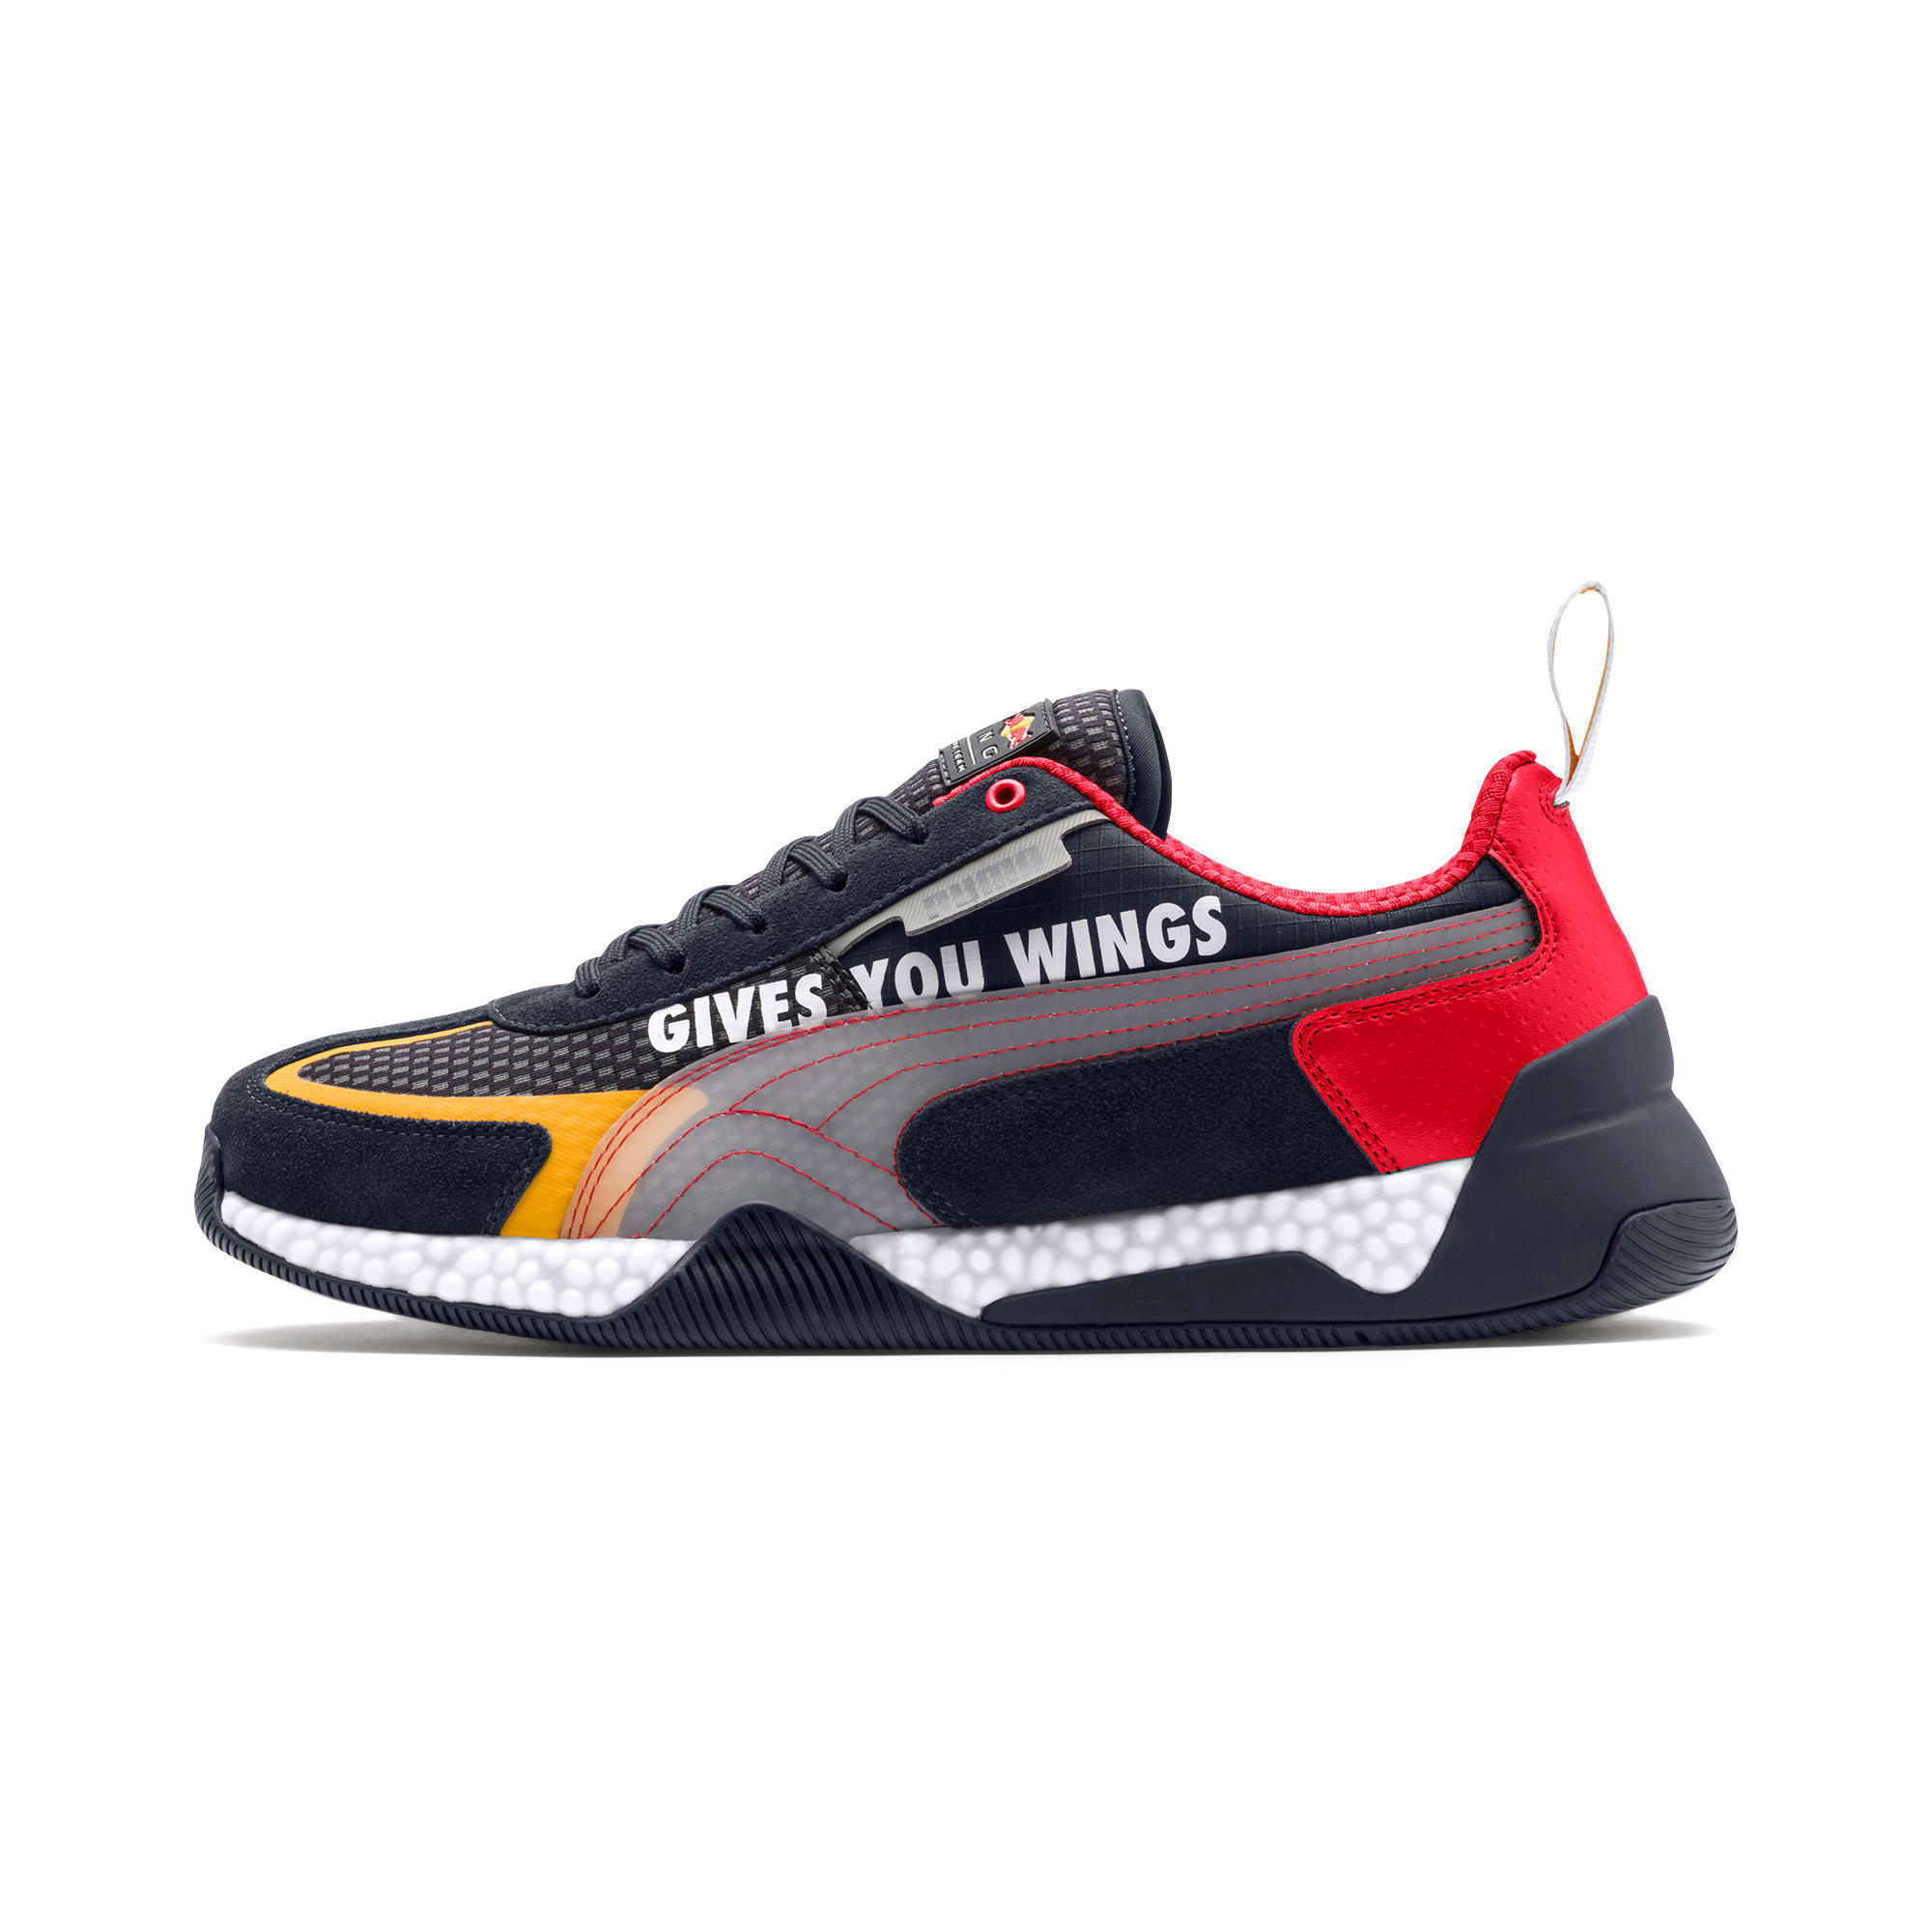 Thumbnail 1 of Red Bull Racing Speed HYBRID Men's Trainers, NIGHT SKY-White-Chinese Red, medium-IND